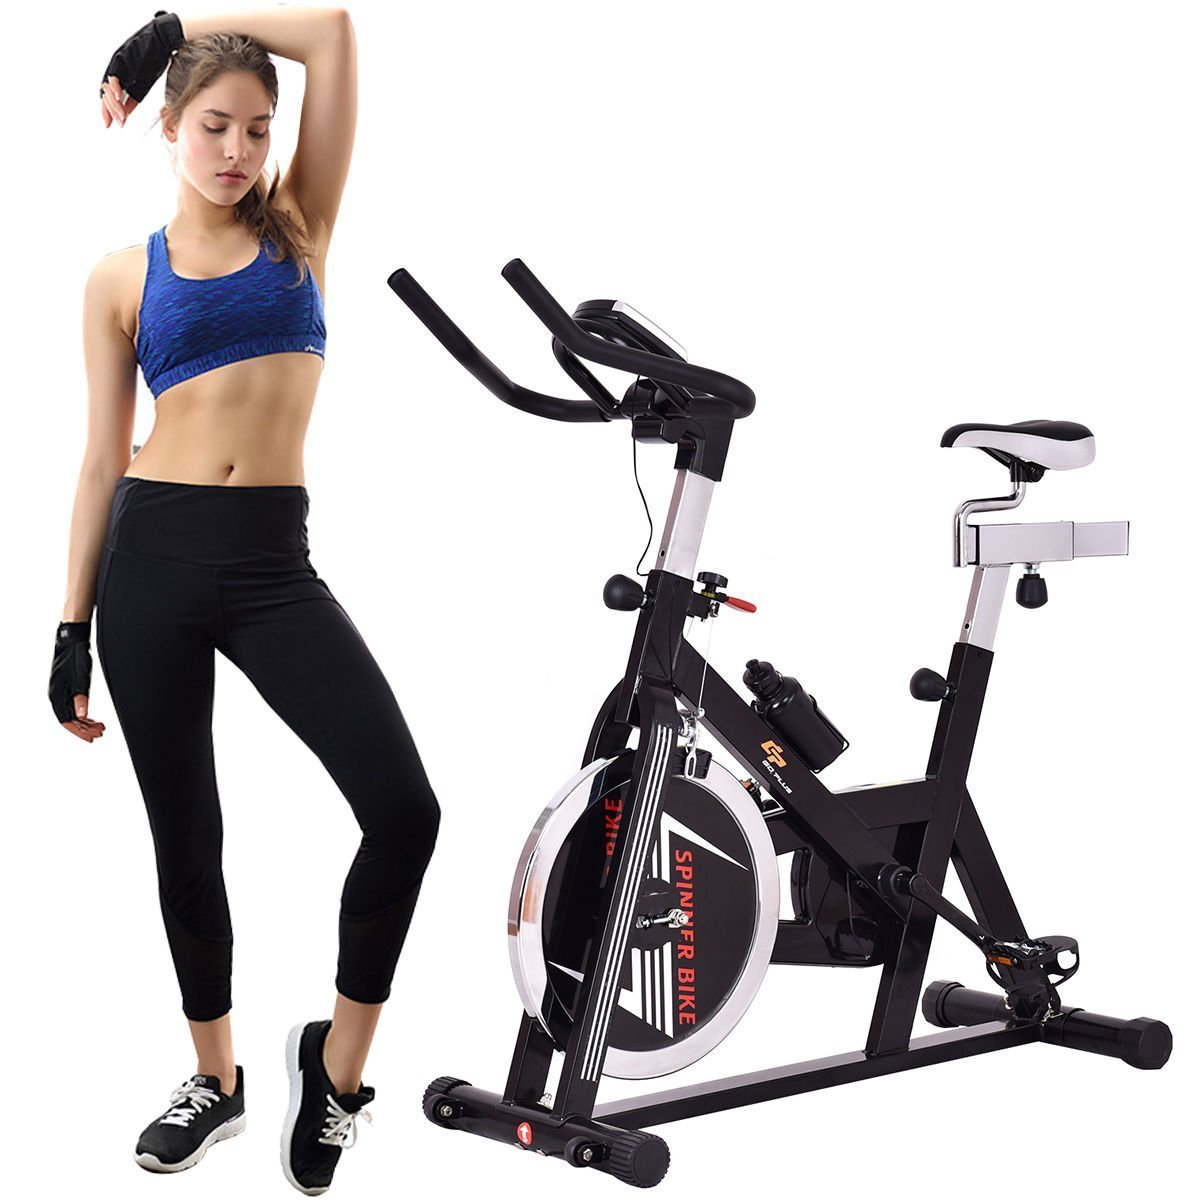 Gymax Stationary Exercise Bike w/ Adjustable Seat and Handlebars, Indoor Cycling Bike Cardio Fitness Home Gym Equipment by Gymax (Image #7)